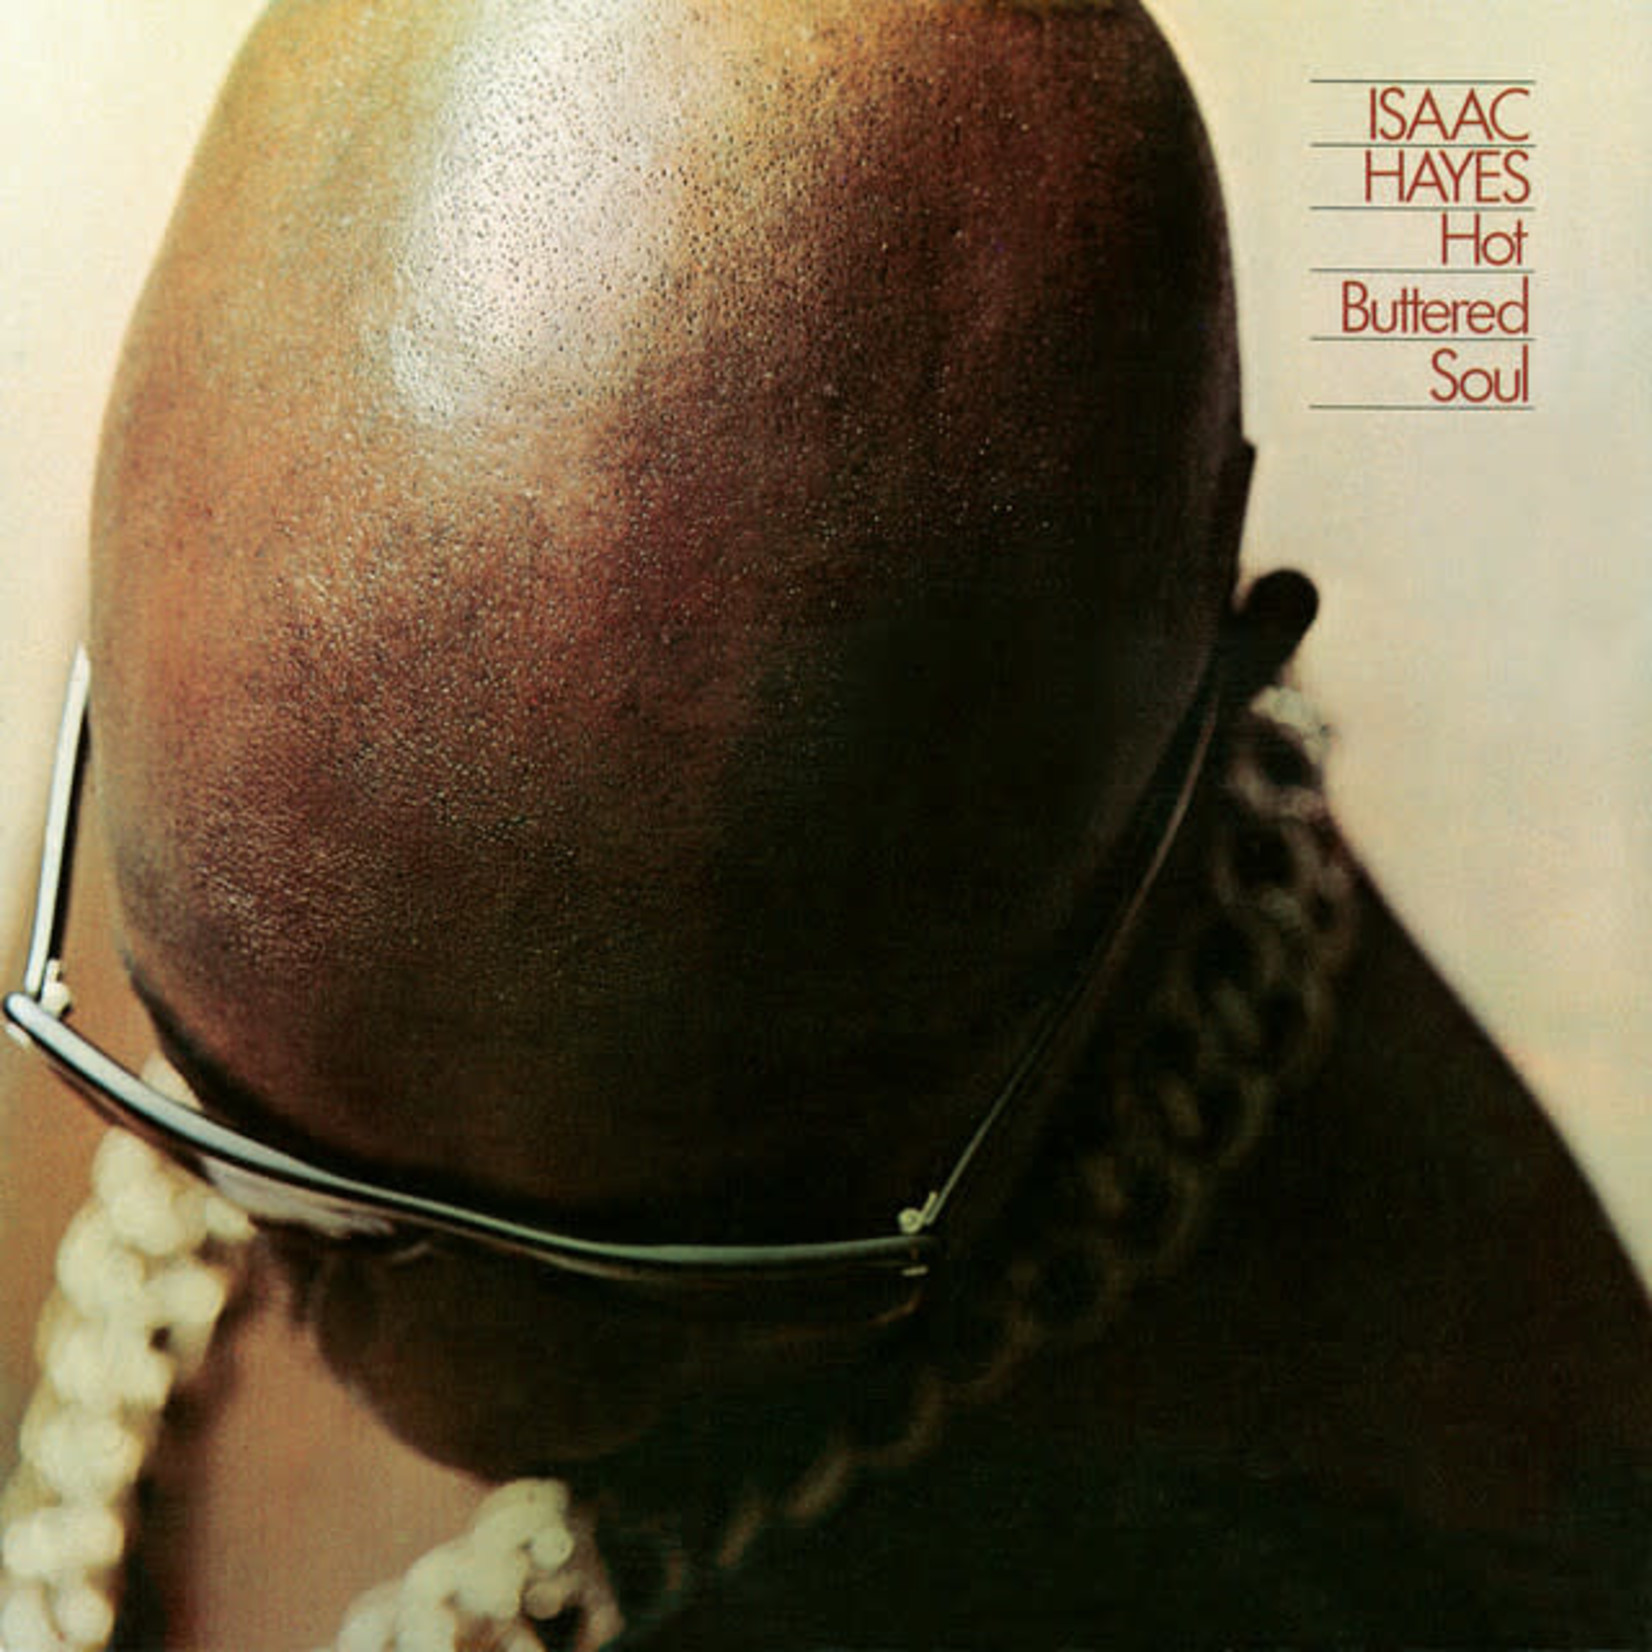 Vinyl Issac Hayes - Hot Buttered Soul